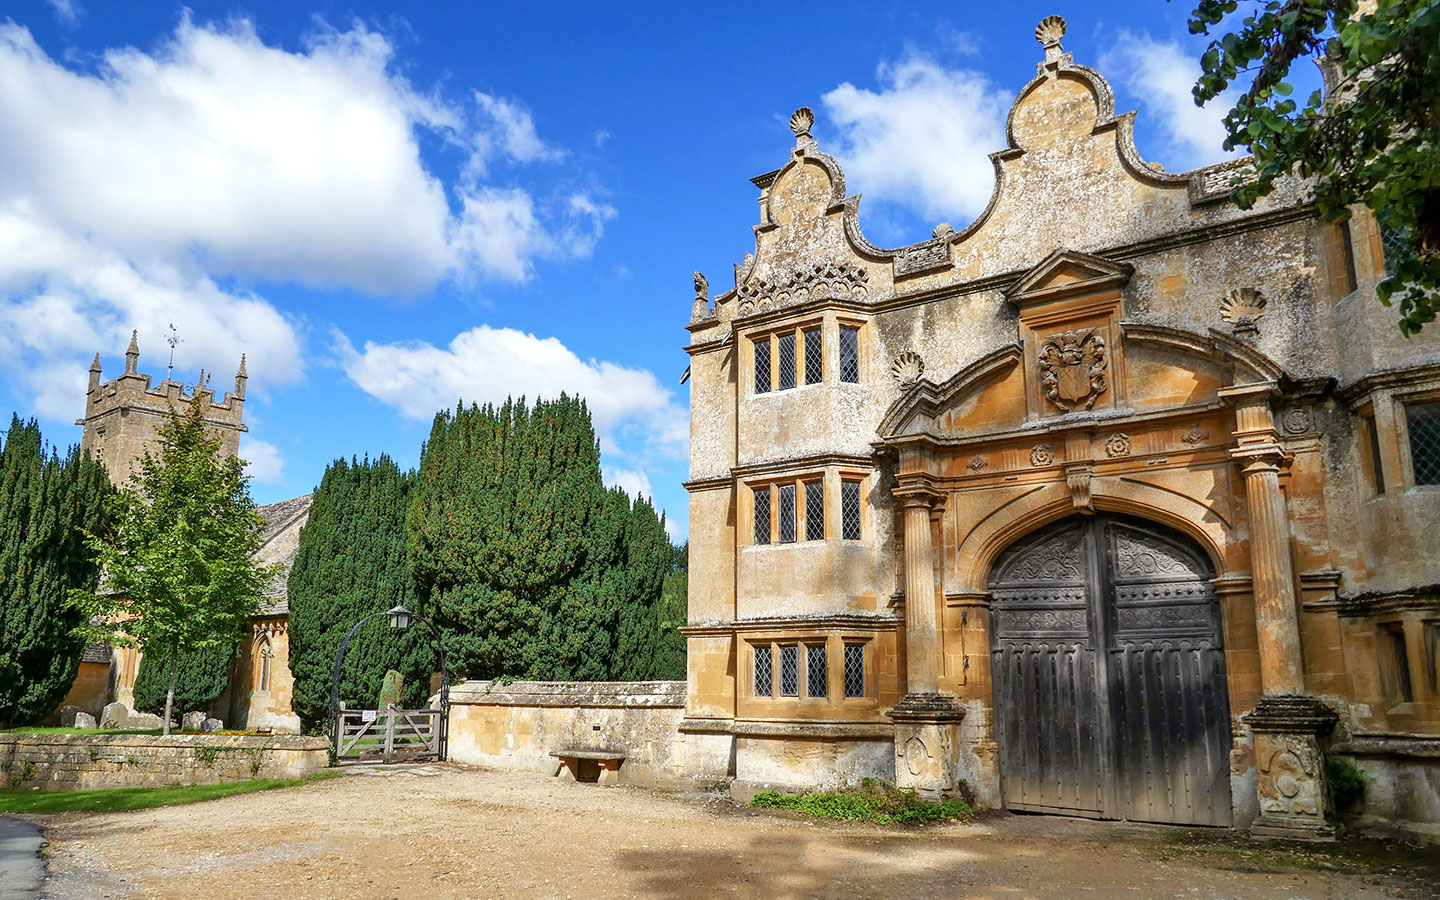 The entrance to Stanway House, a popular Cotswolds film location